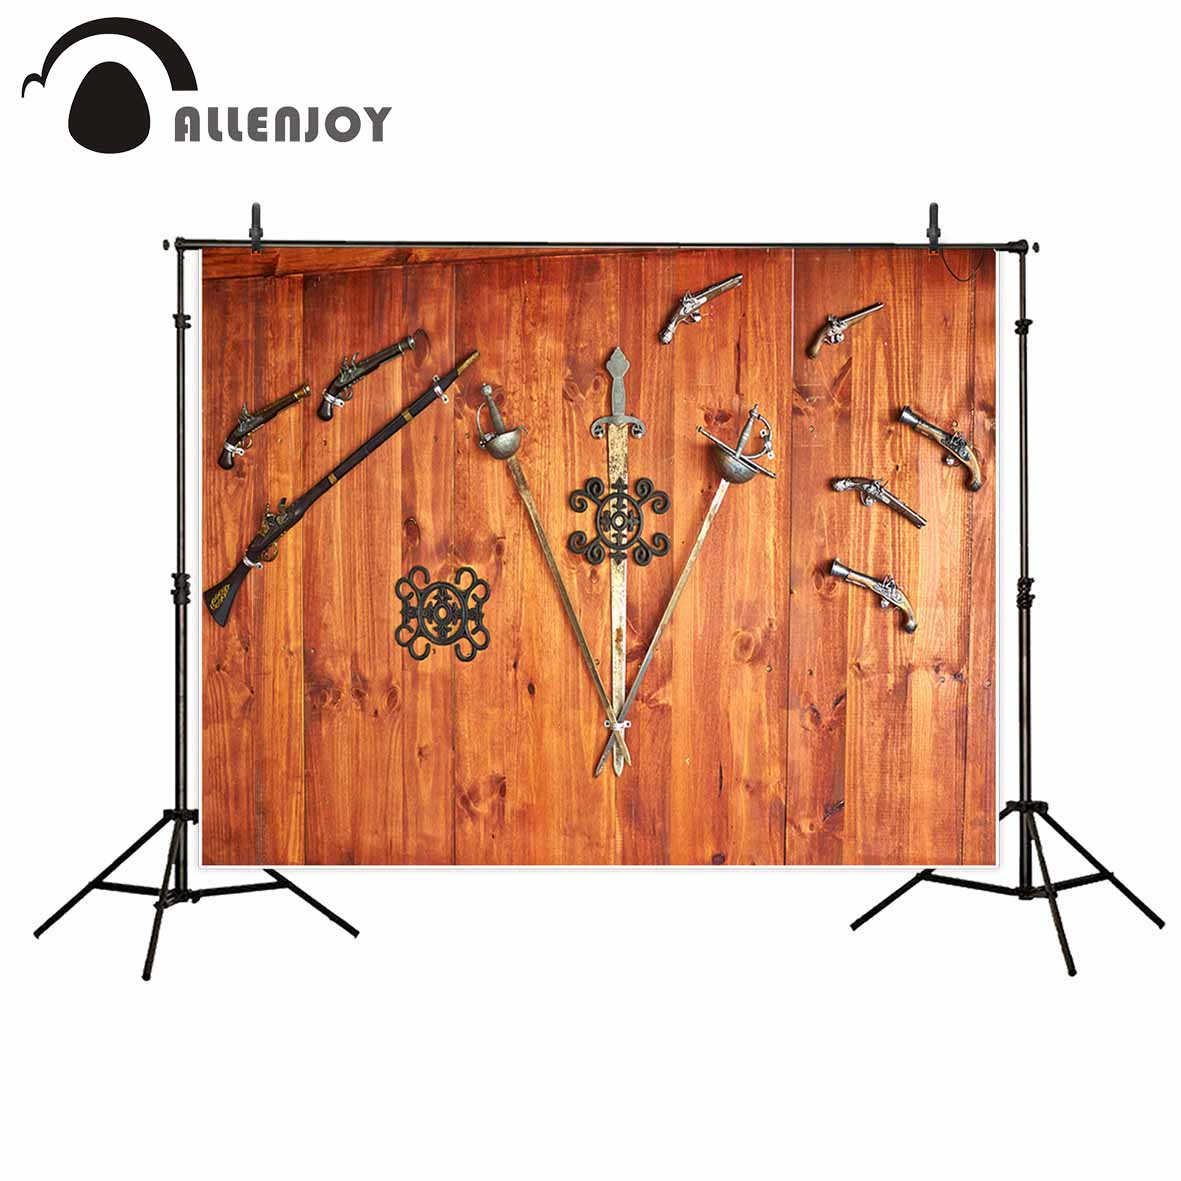 Allenjoy photography backdrops Vintage weapons sword wooden floor metal photo background fond studio photo allenjoy studio photo background vintage colorful flags birthday blue floor photocall vinyl backdrops for photography